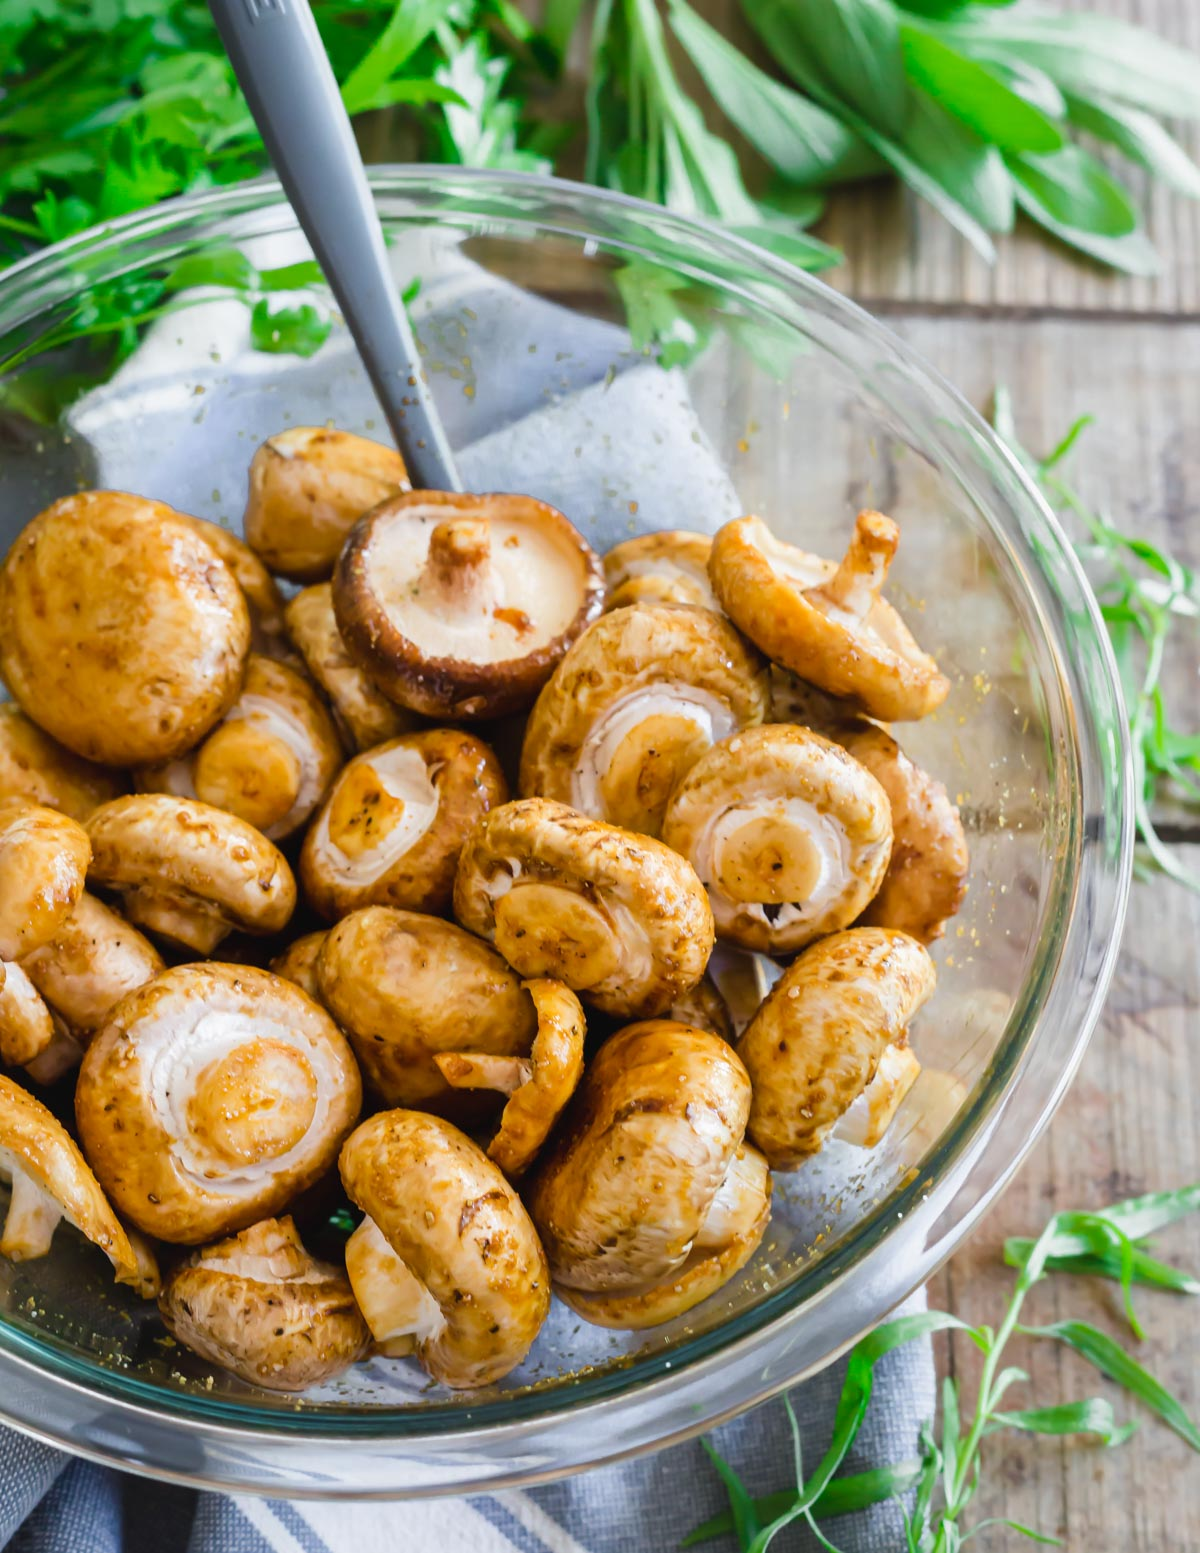 Seasoning mushrooms to be cooked in the air fryer with garlic, tamari and worcestershire sauce.